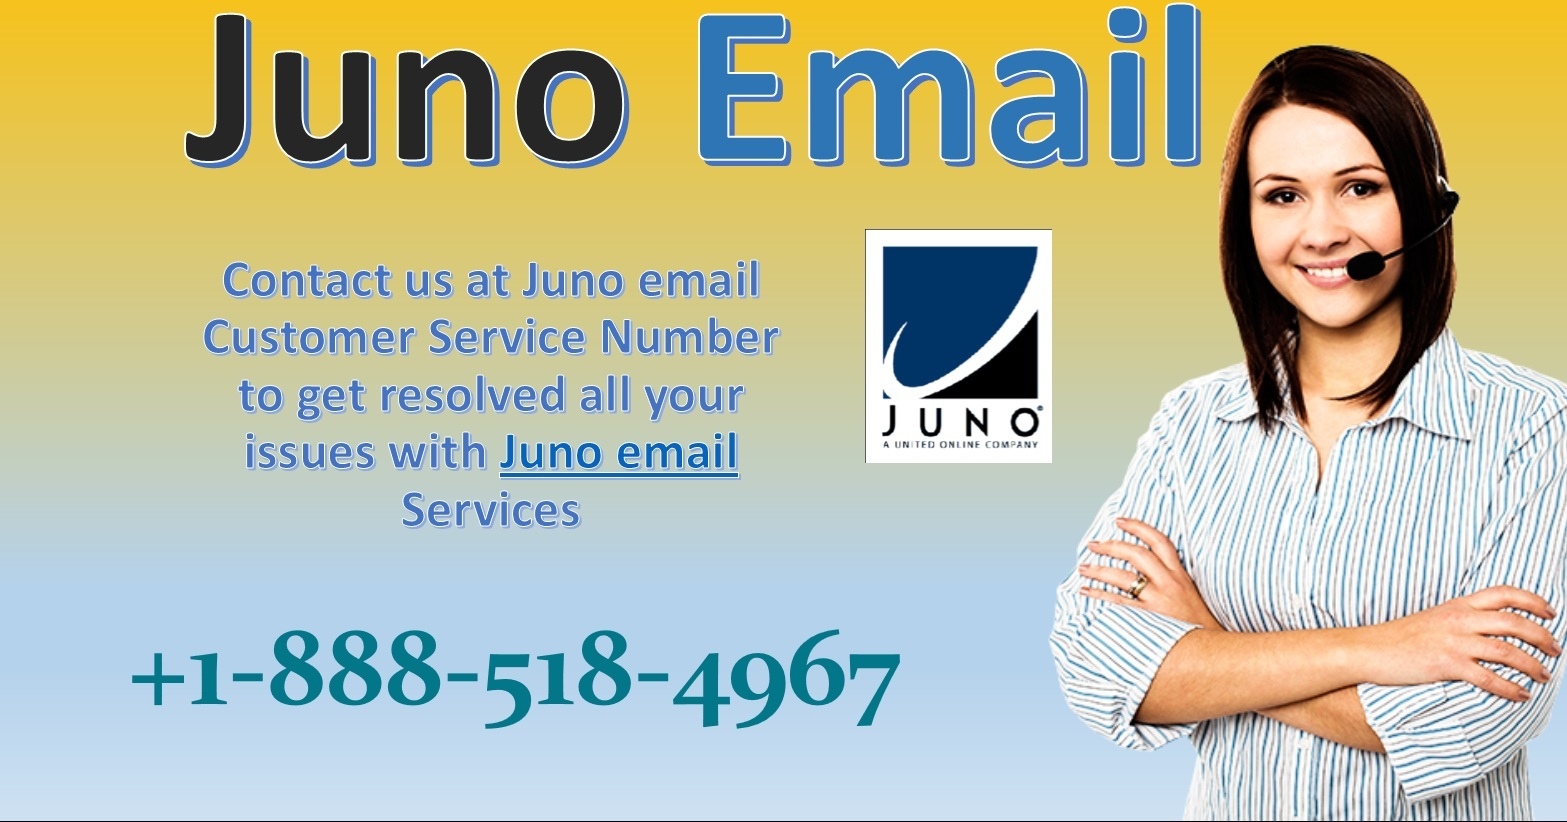 reach Us At Juno email login Help Phone Number - United